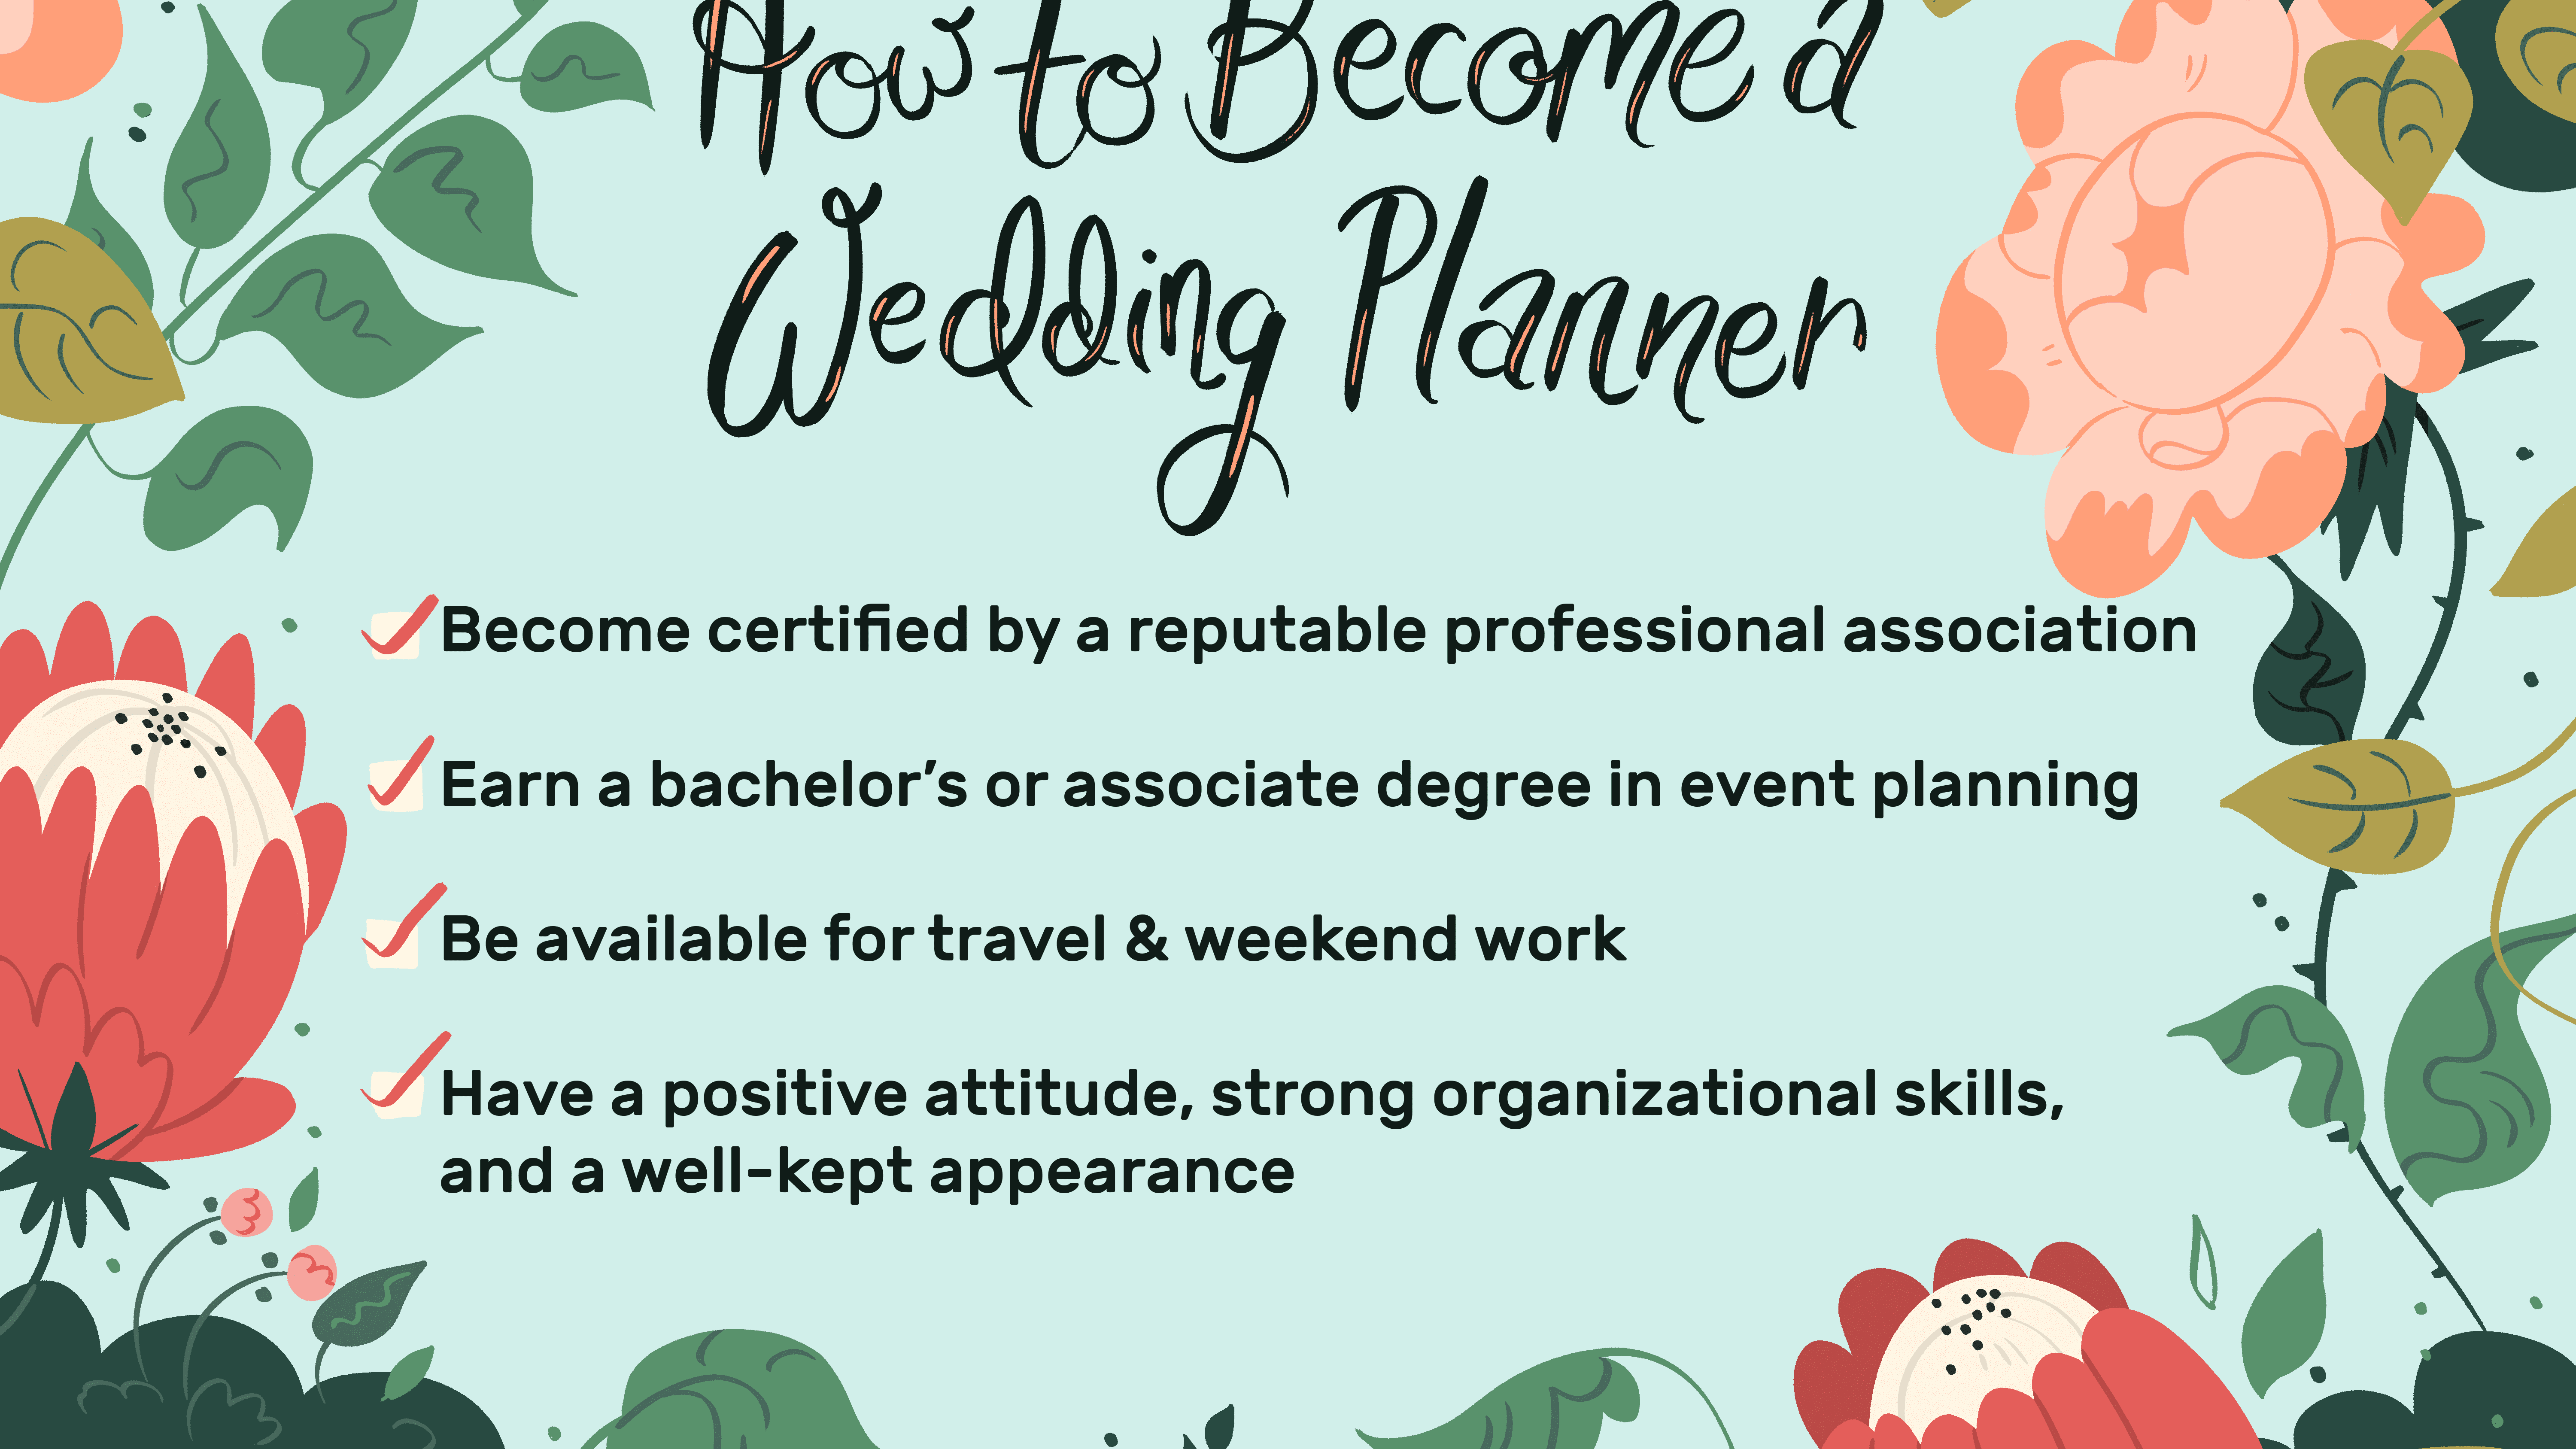 How To Start Planning A Wedding.Become A Wedding Planner